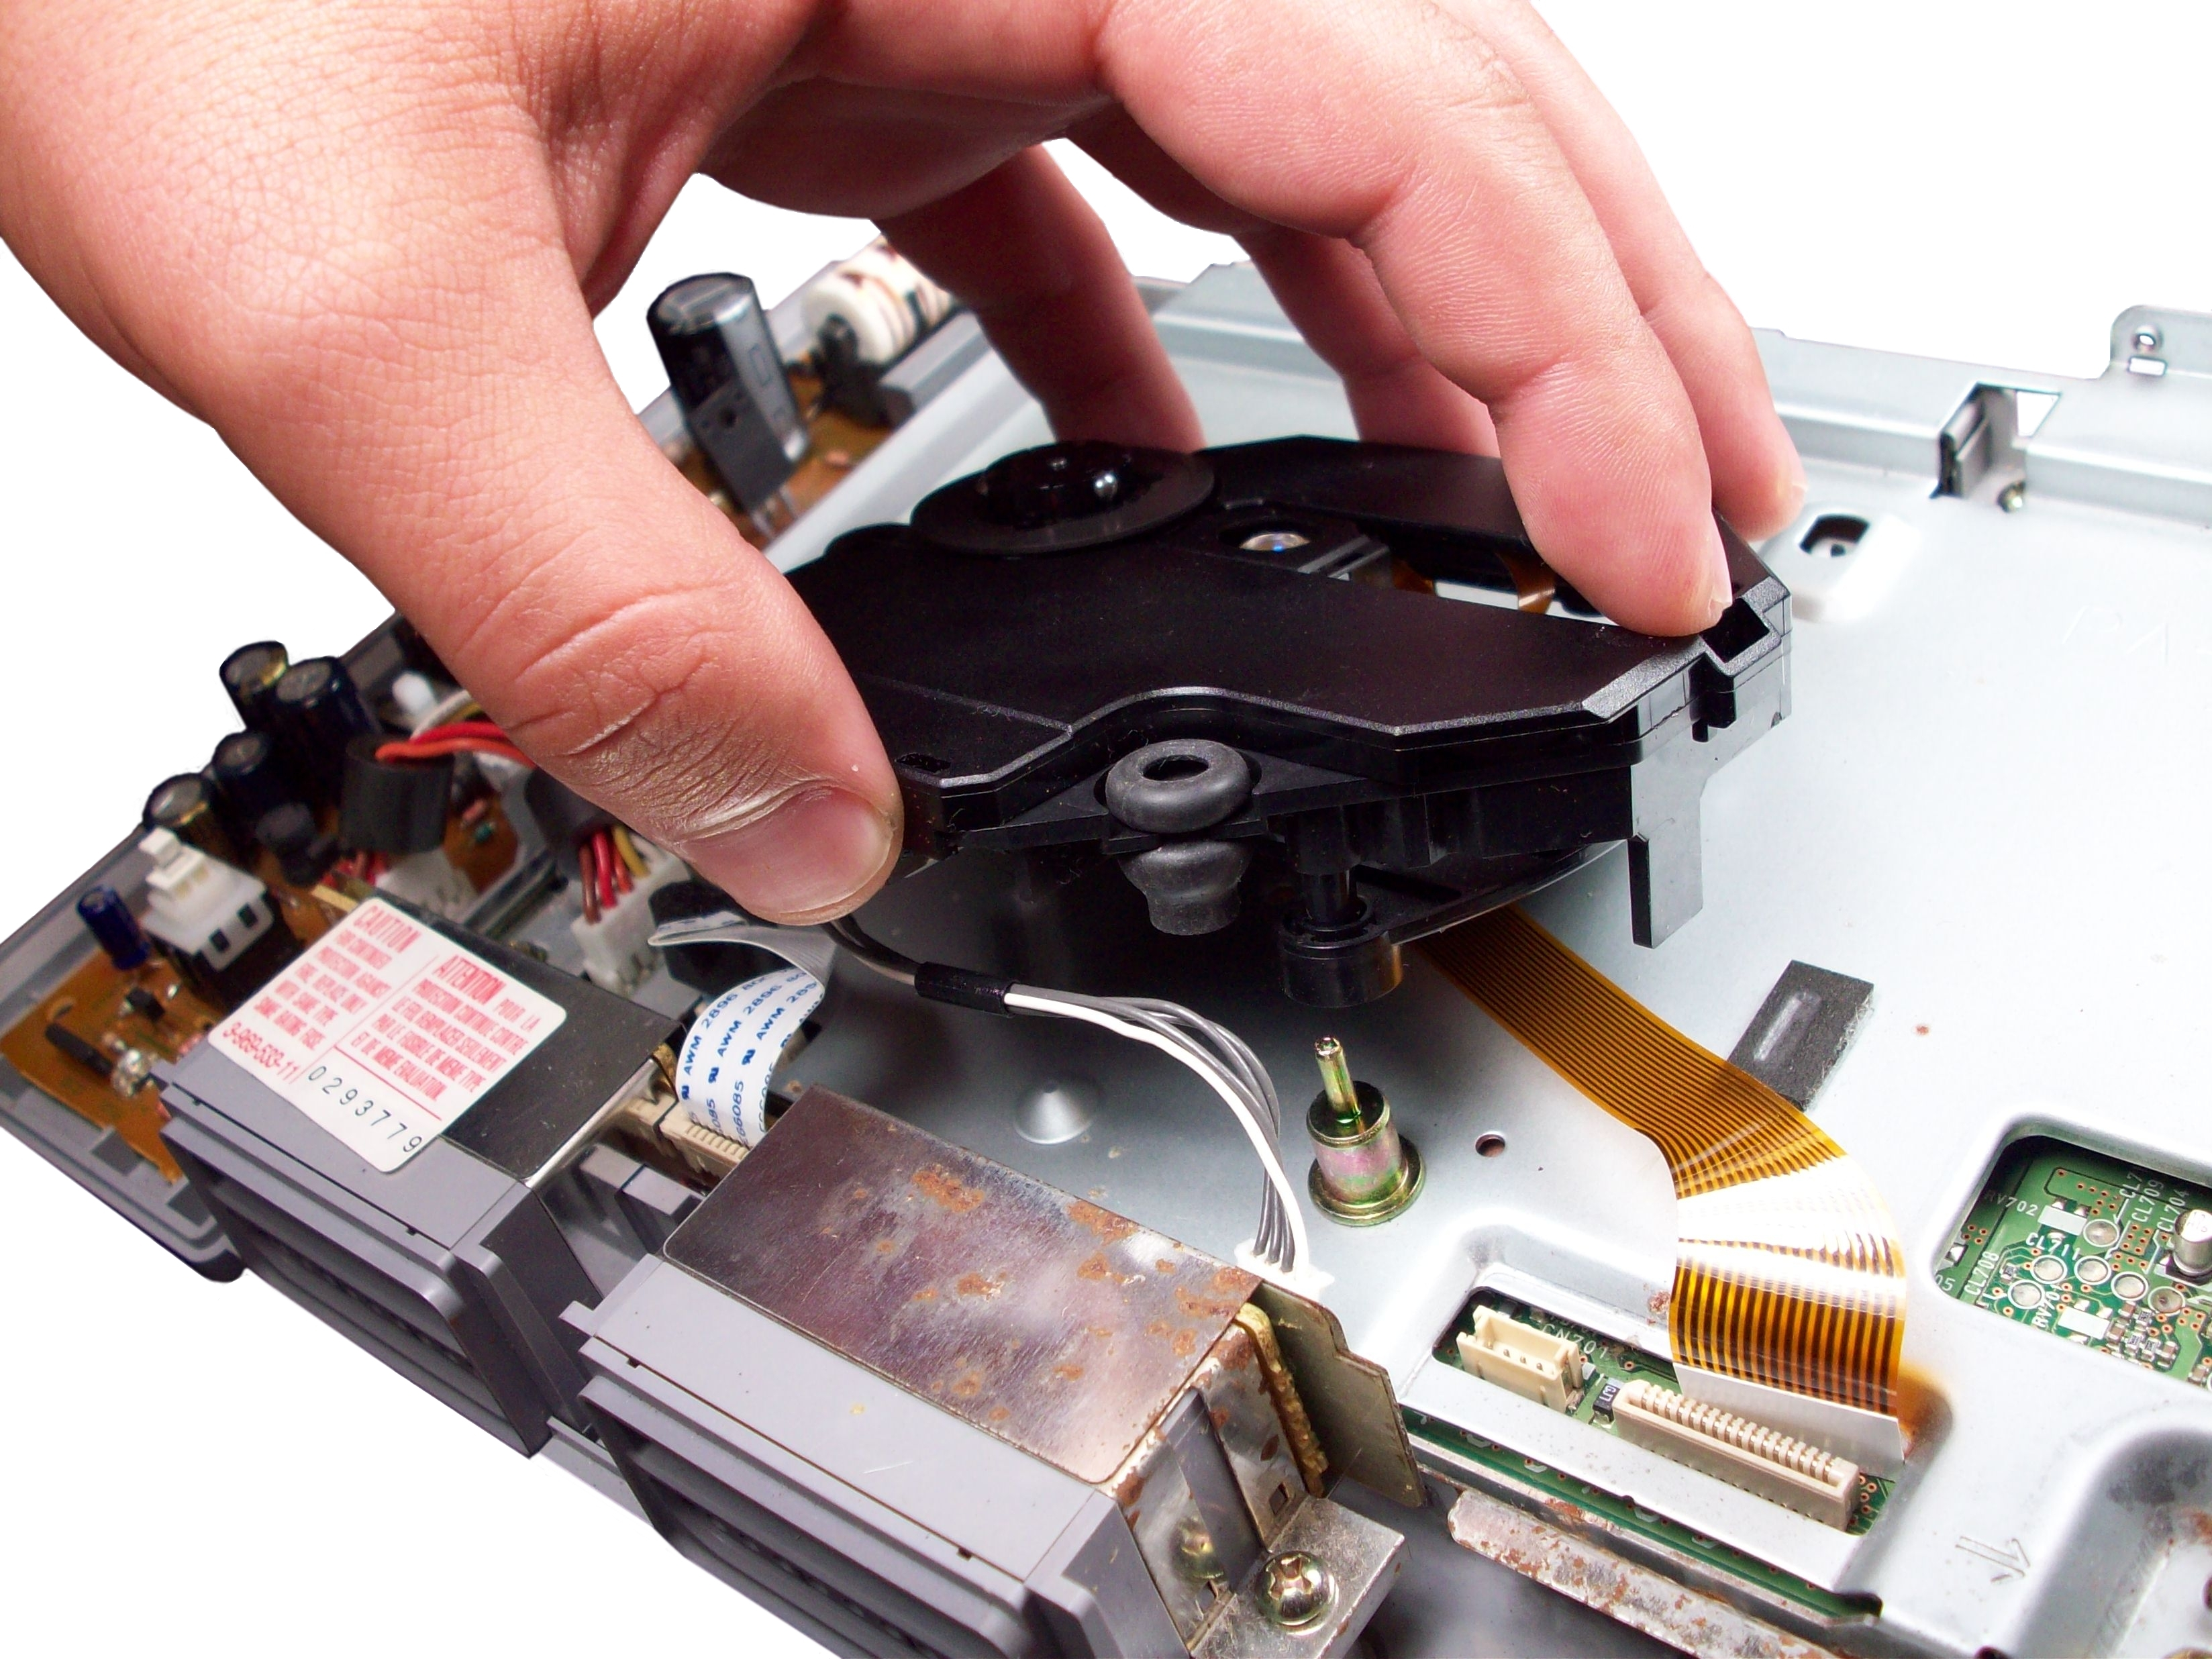 Playstation Repair Ifixit Psx To Usb Wiring Diagram Optical Drive Replacement